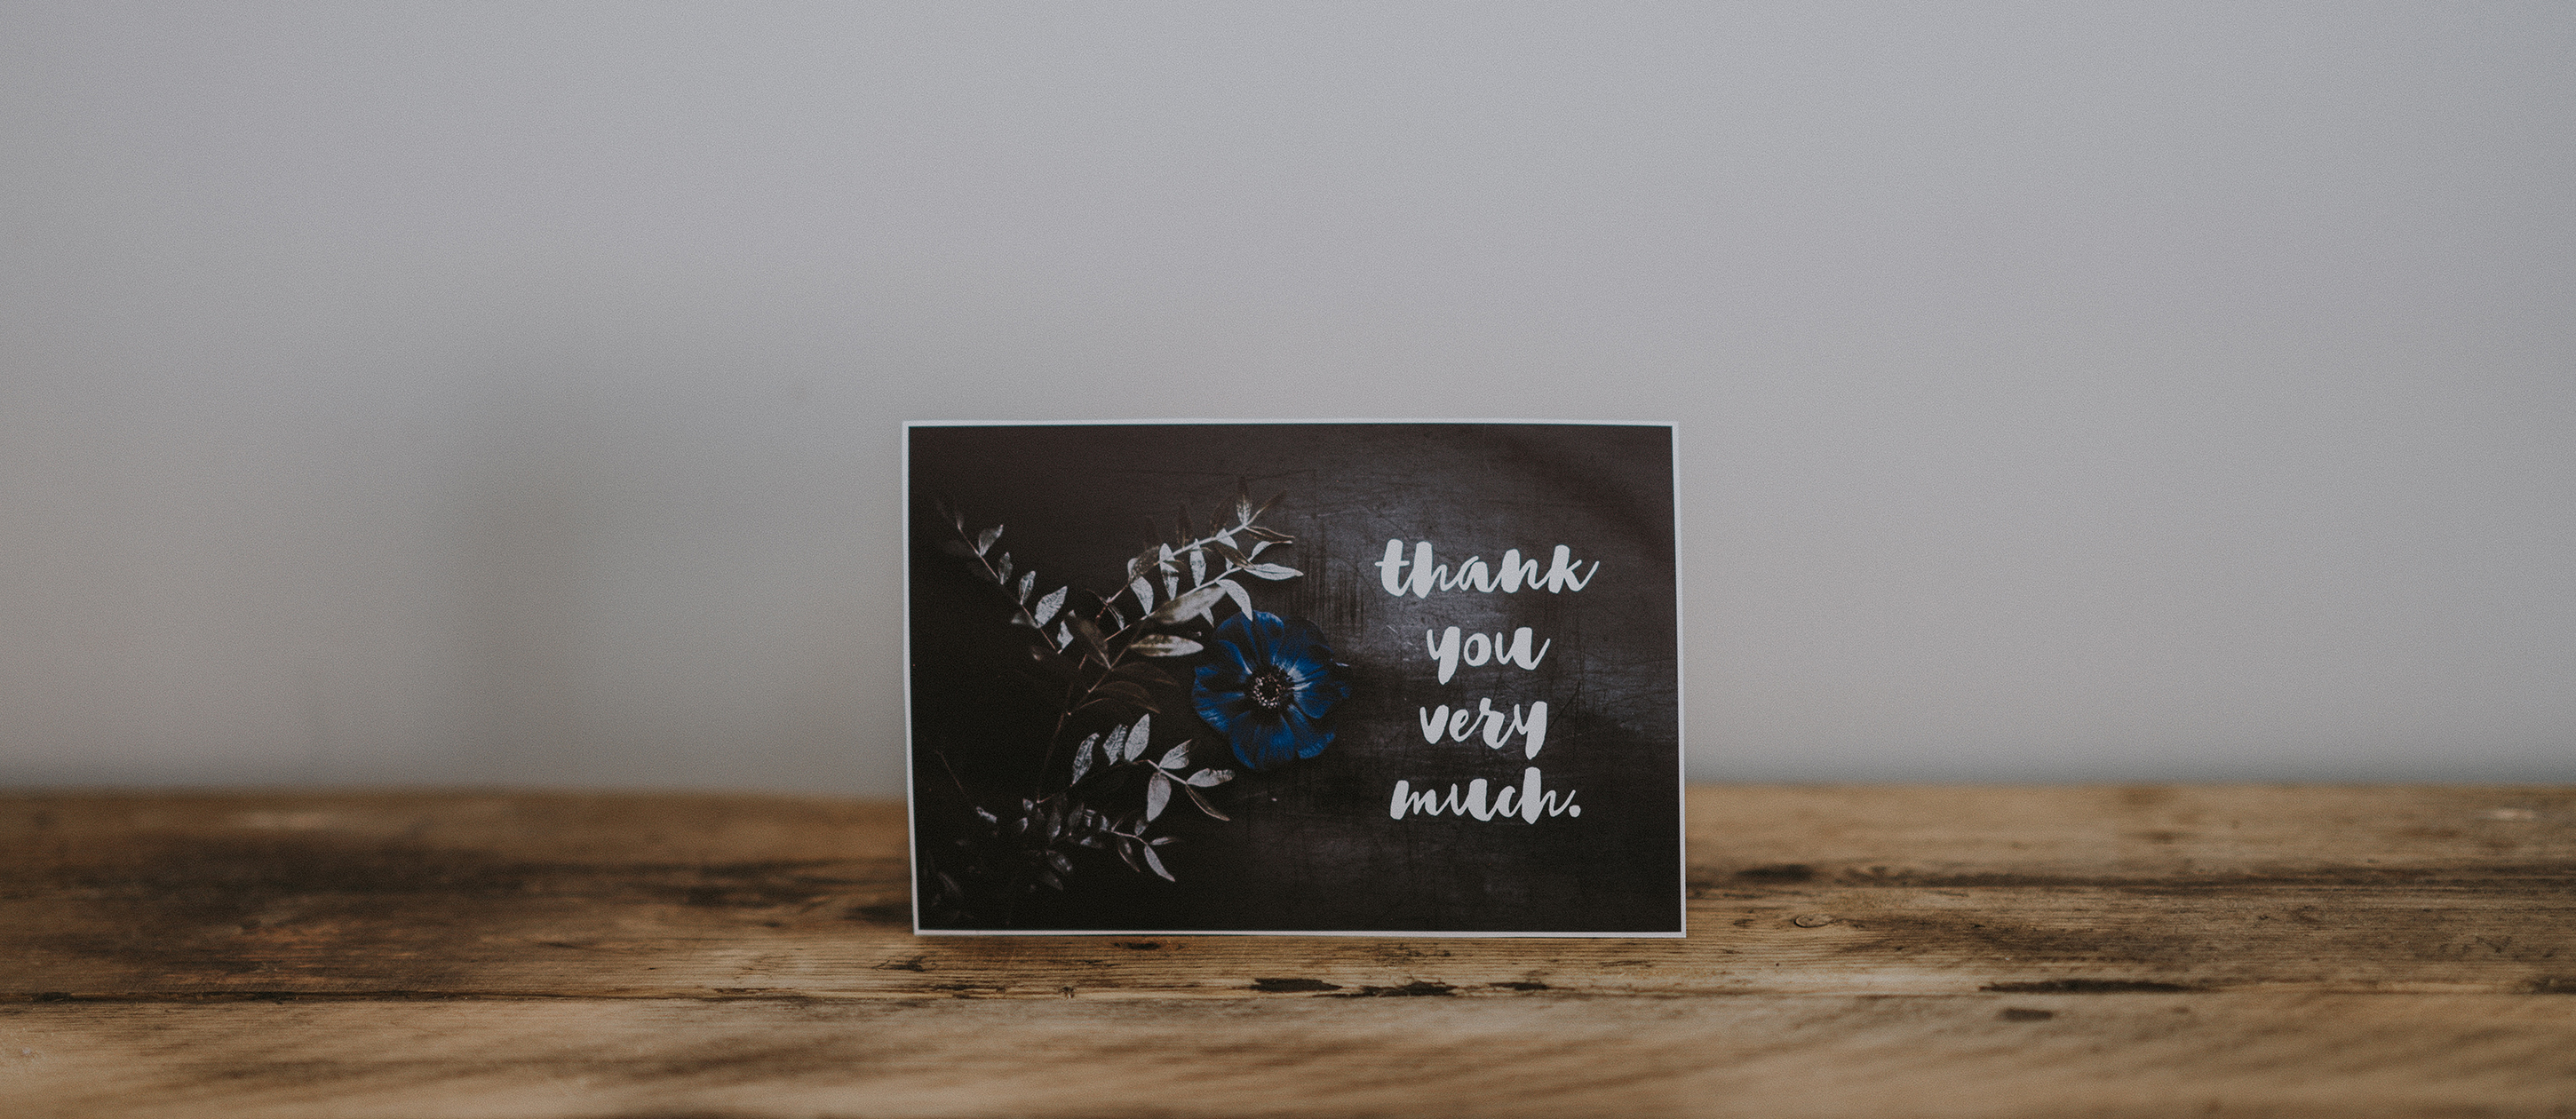 Fitness wellness thank you note